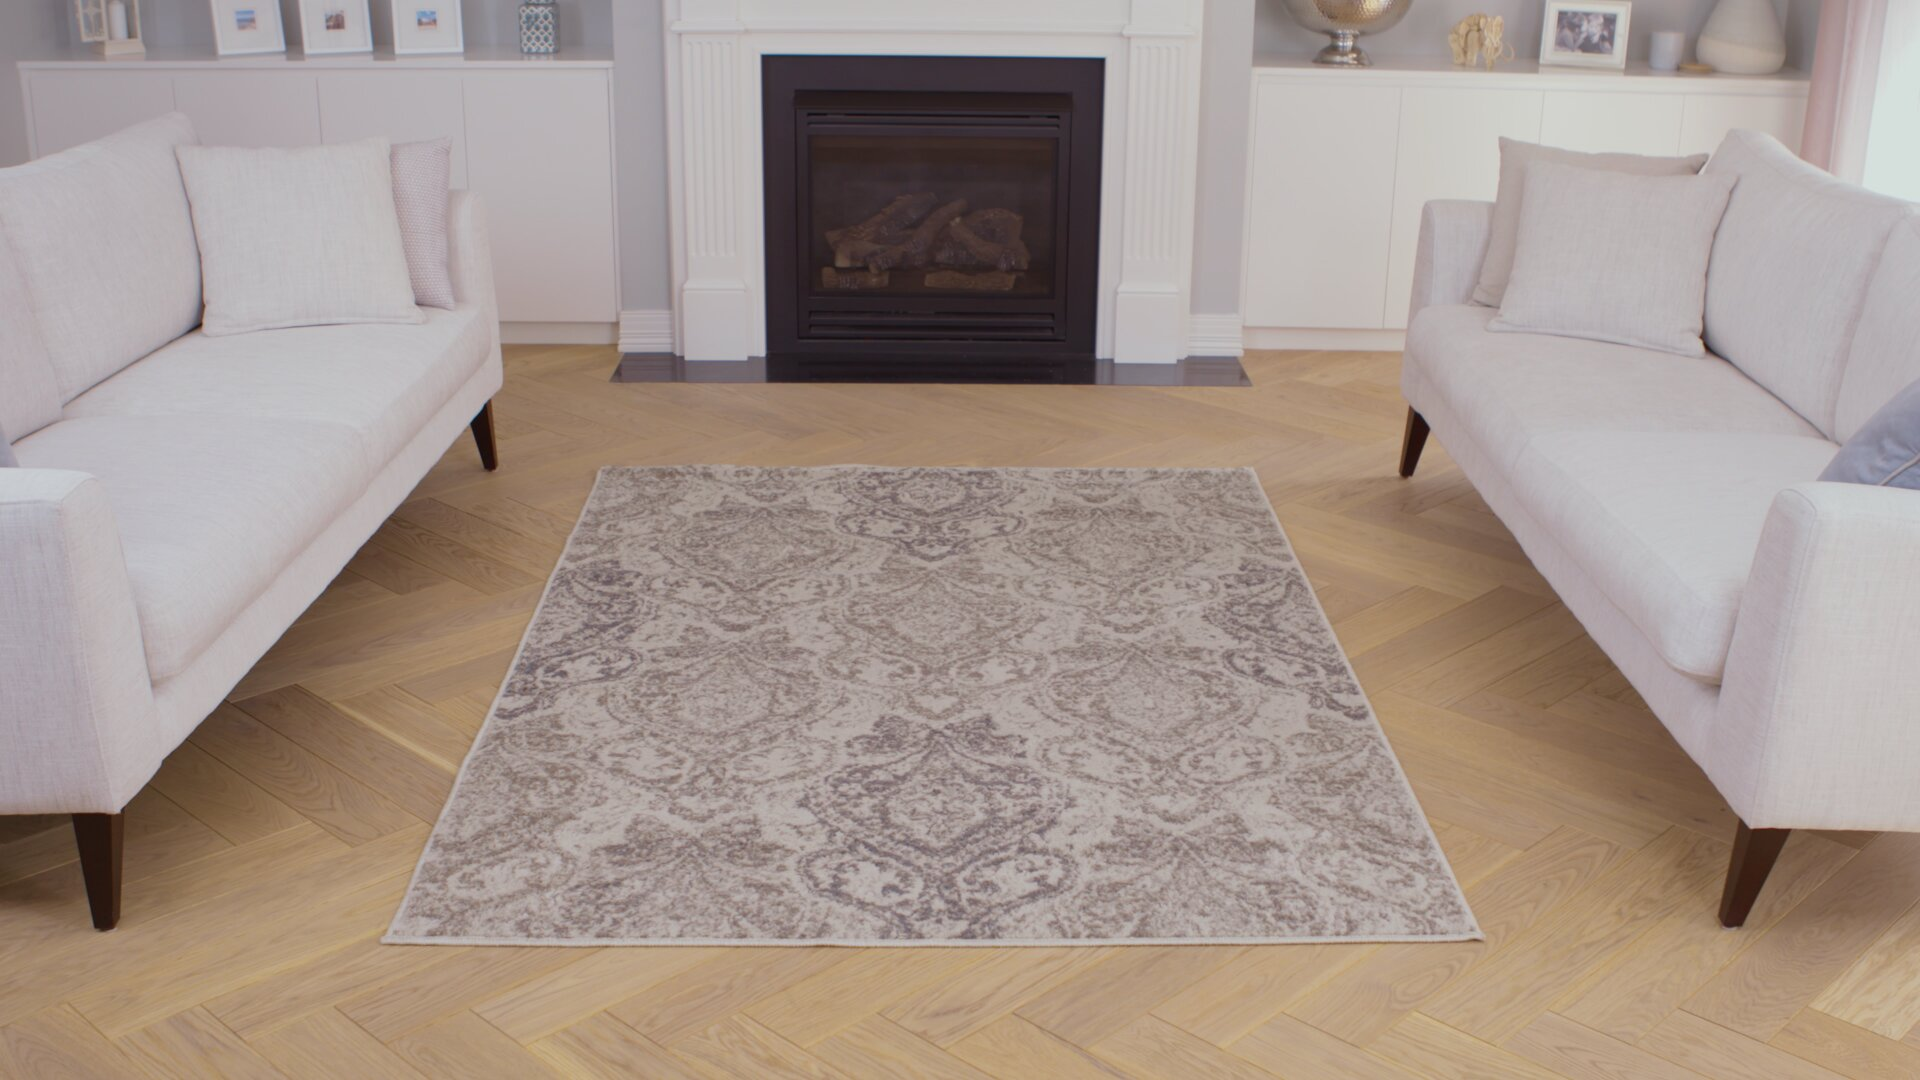 Choosing The Right Rugs & Mats For Your Home